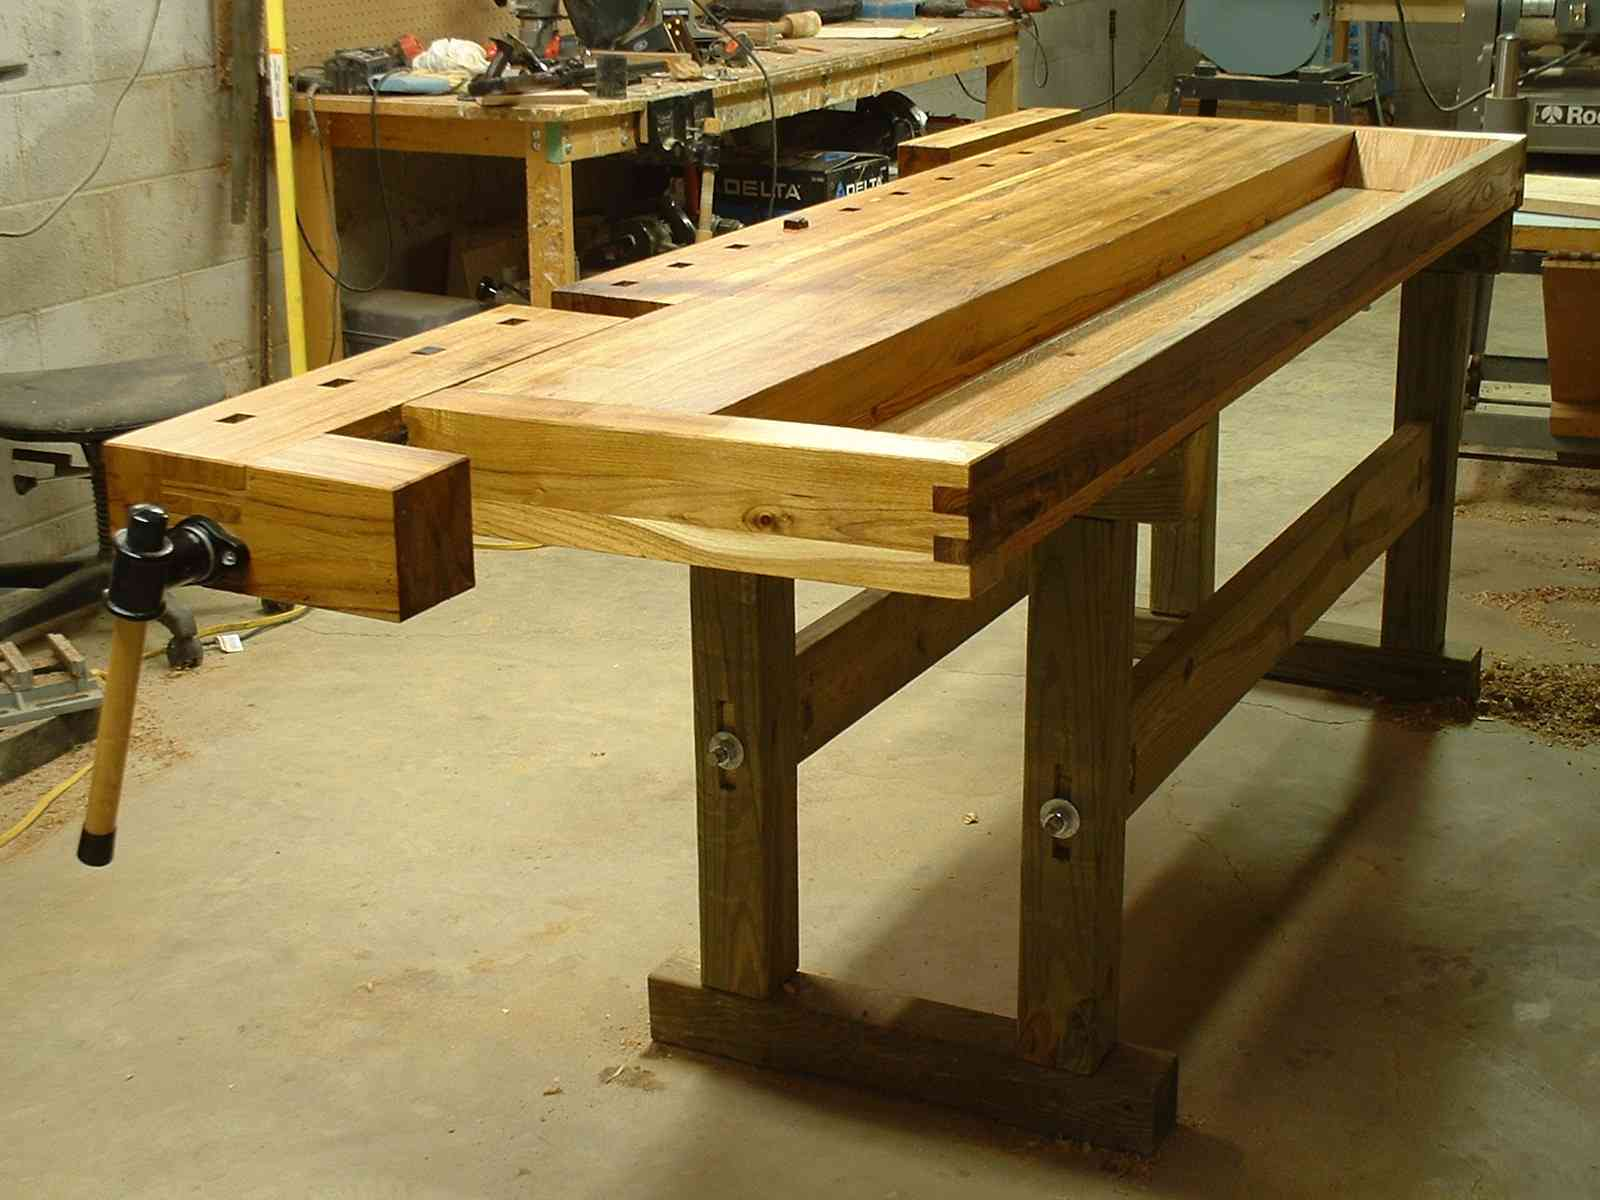 Woodworking Plans Project: Wood work bench pics